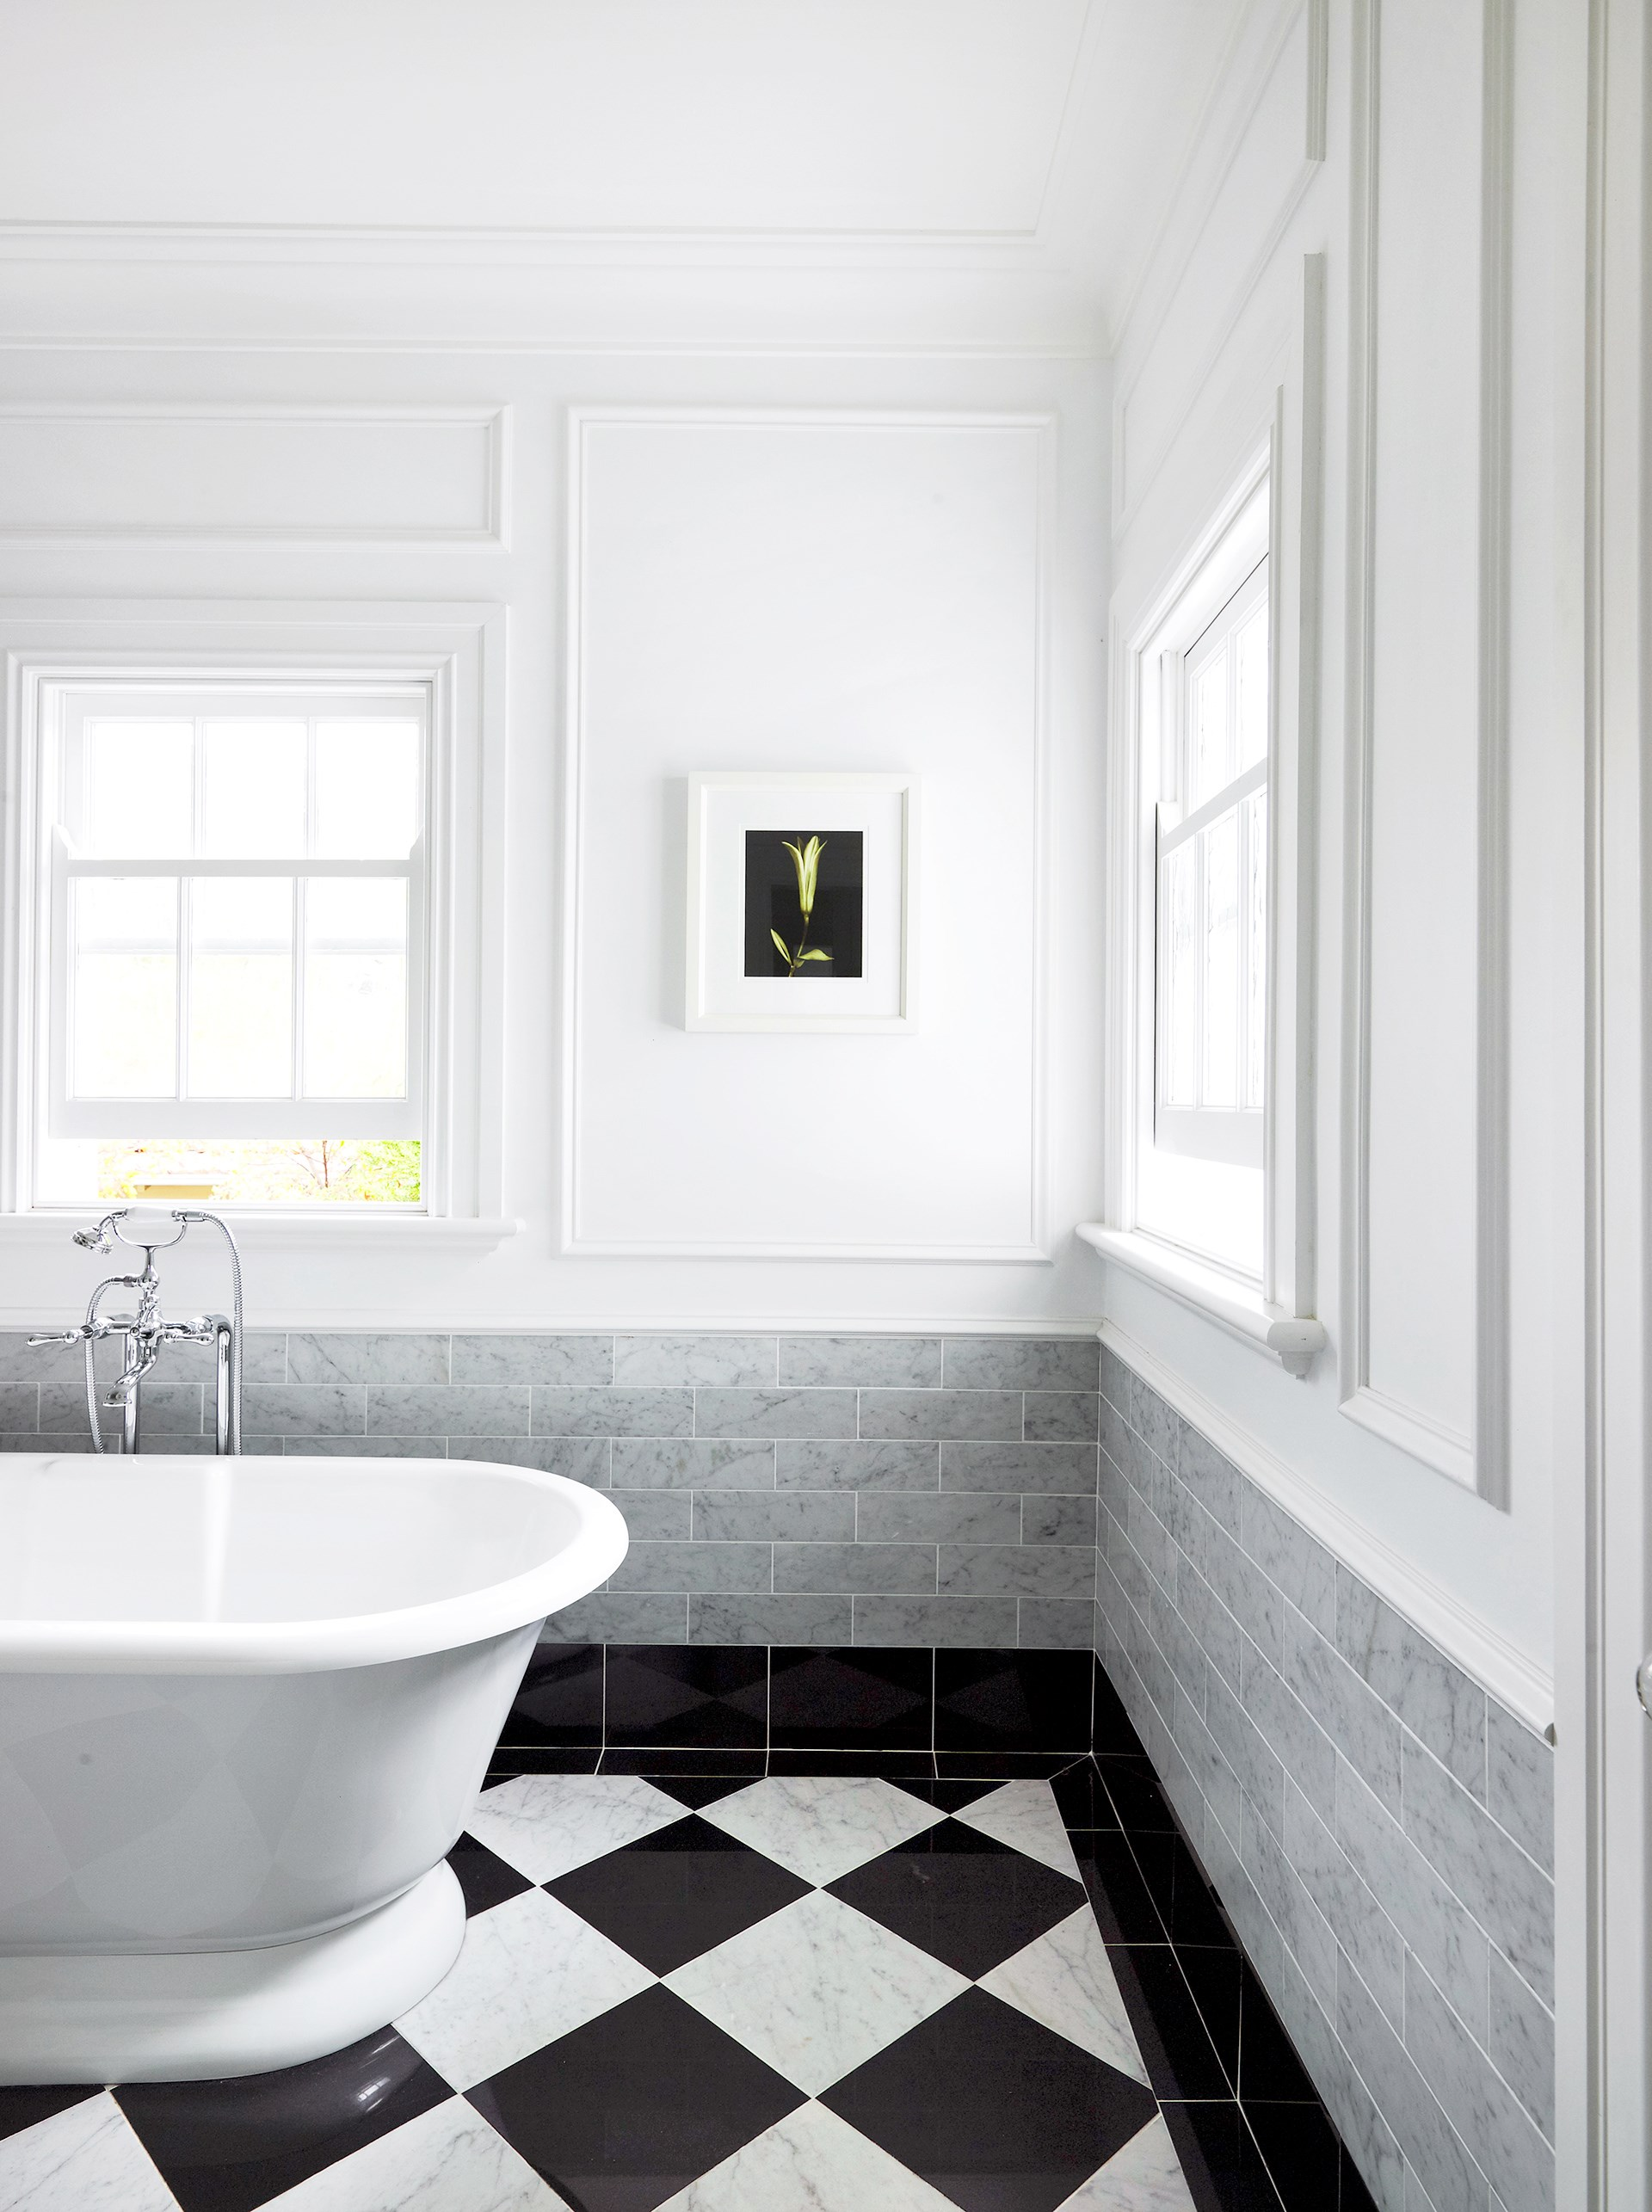 The Art Deco style of this 1940s [Sydney apartment](http://www.homestolove.com.au/gallery-emma-and-tonis-luxurious-regency-style-home-2311) travels right through to the tranquil ensuite where bold floor tiles contrast seamlessly with the fresh white walls. *Photo: Anson Smart / Belle*